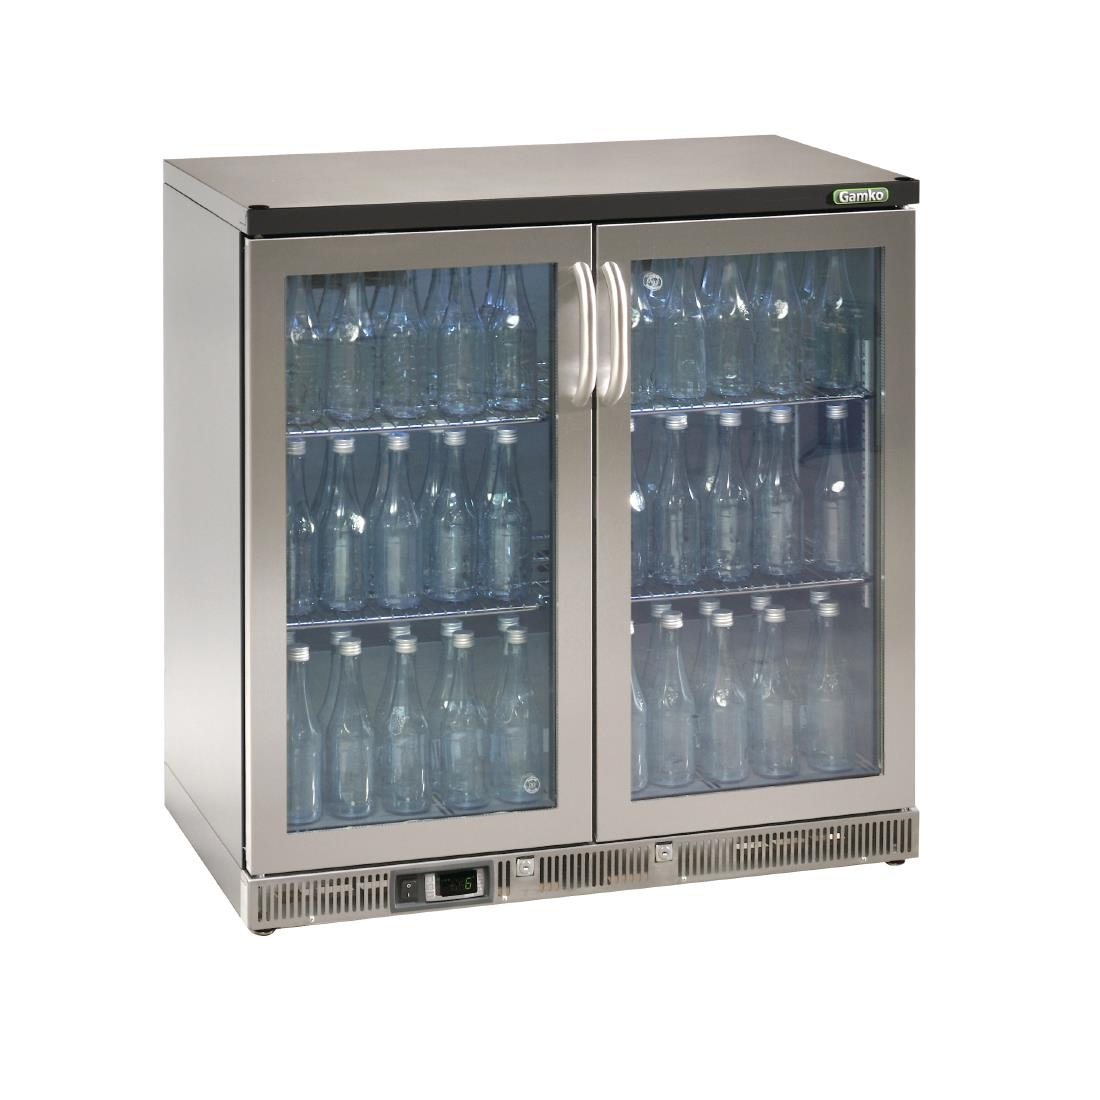 Gamko Bottle Cooler - Double Hinged Door 250 Ltr Stainless Steel